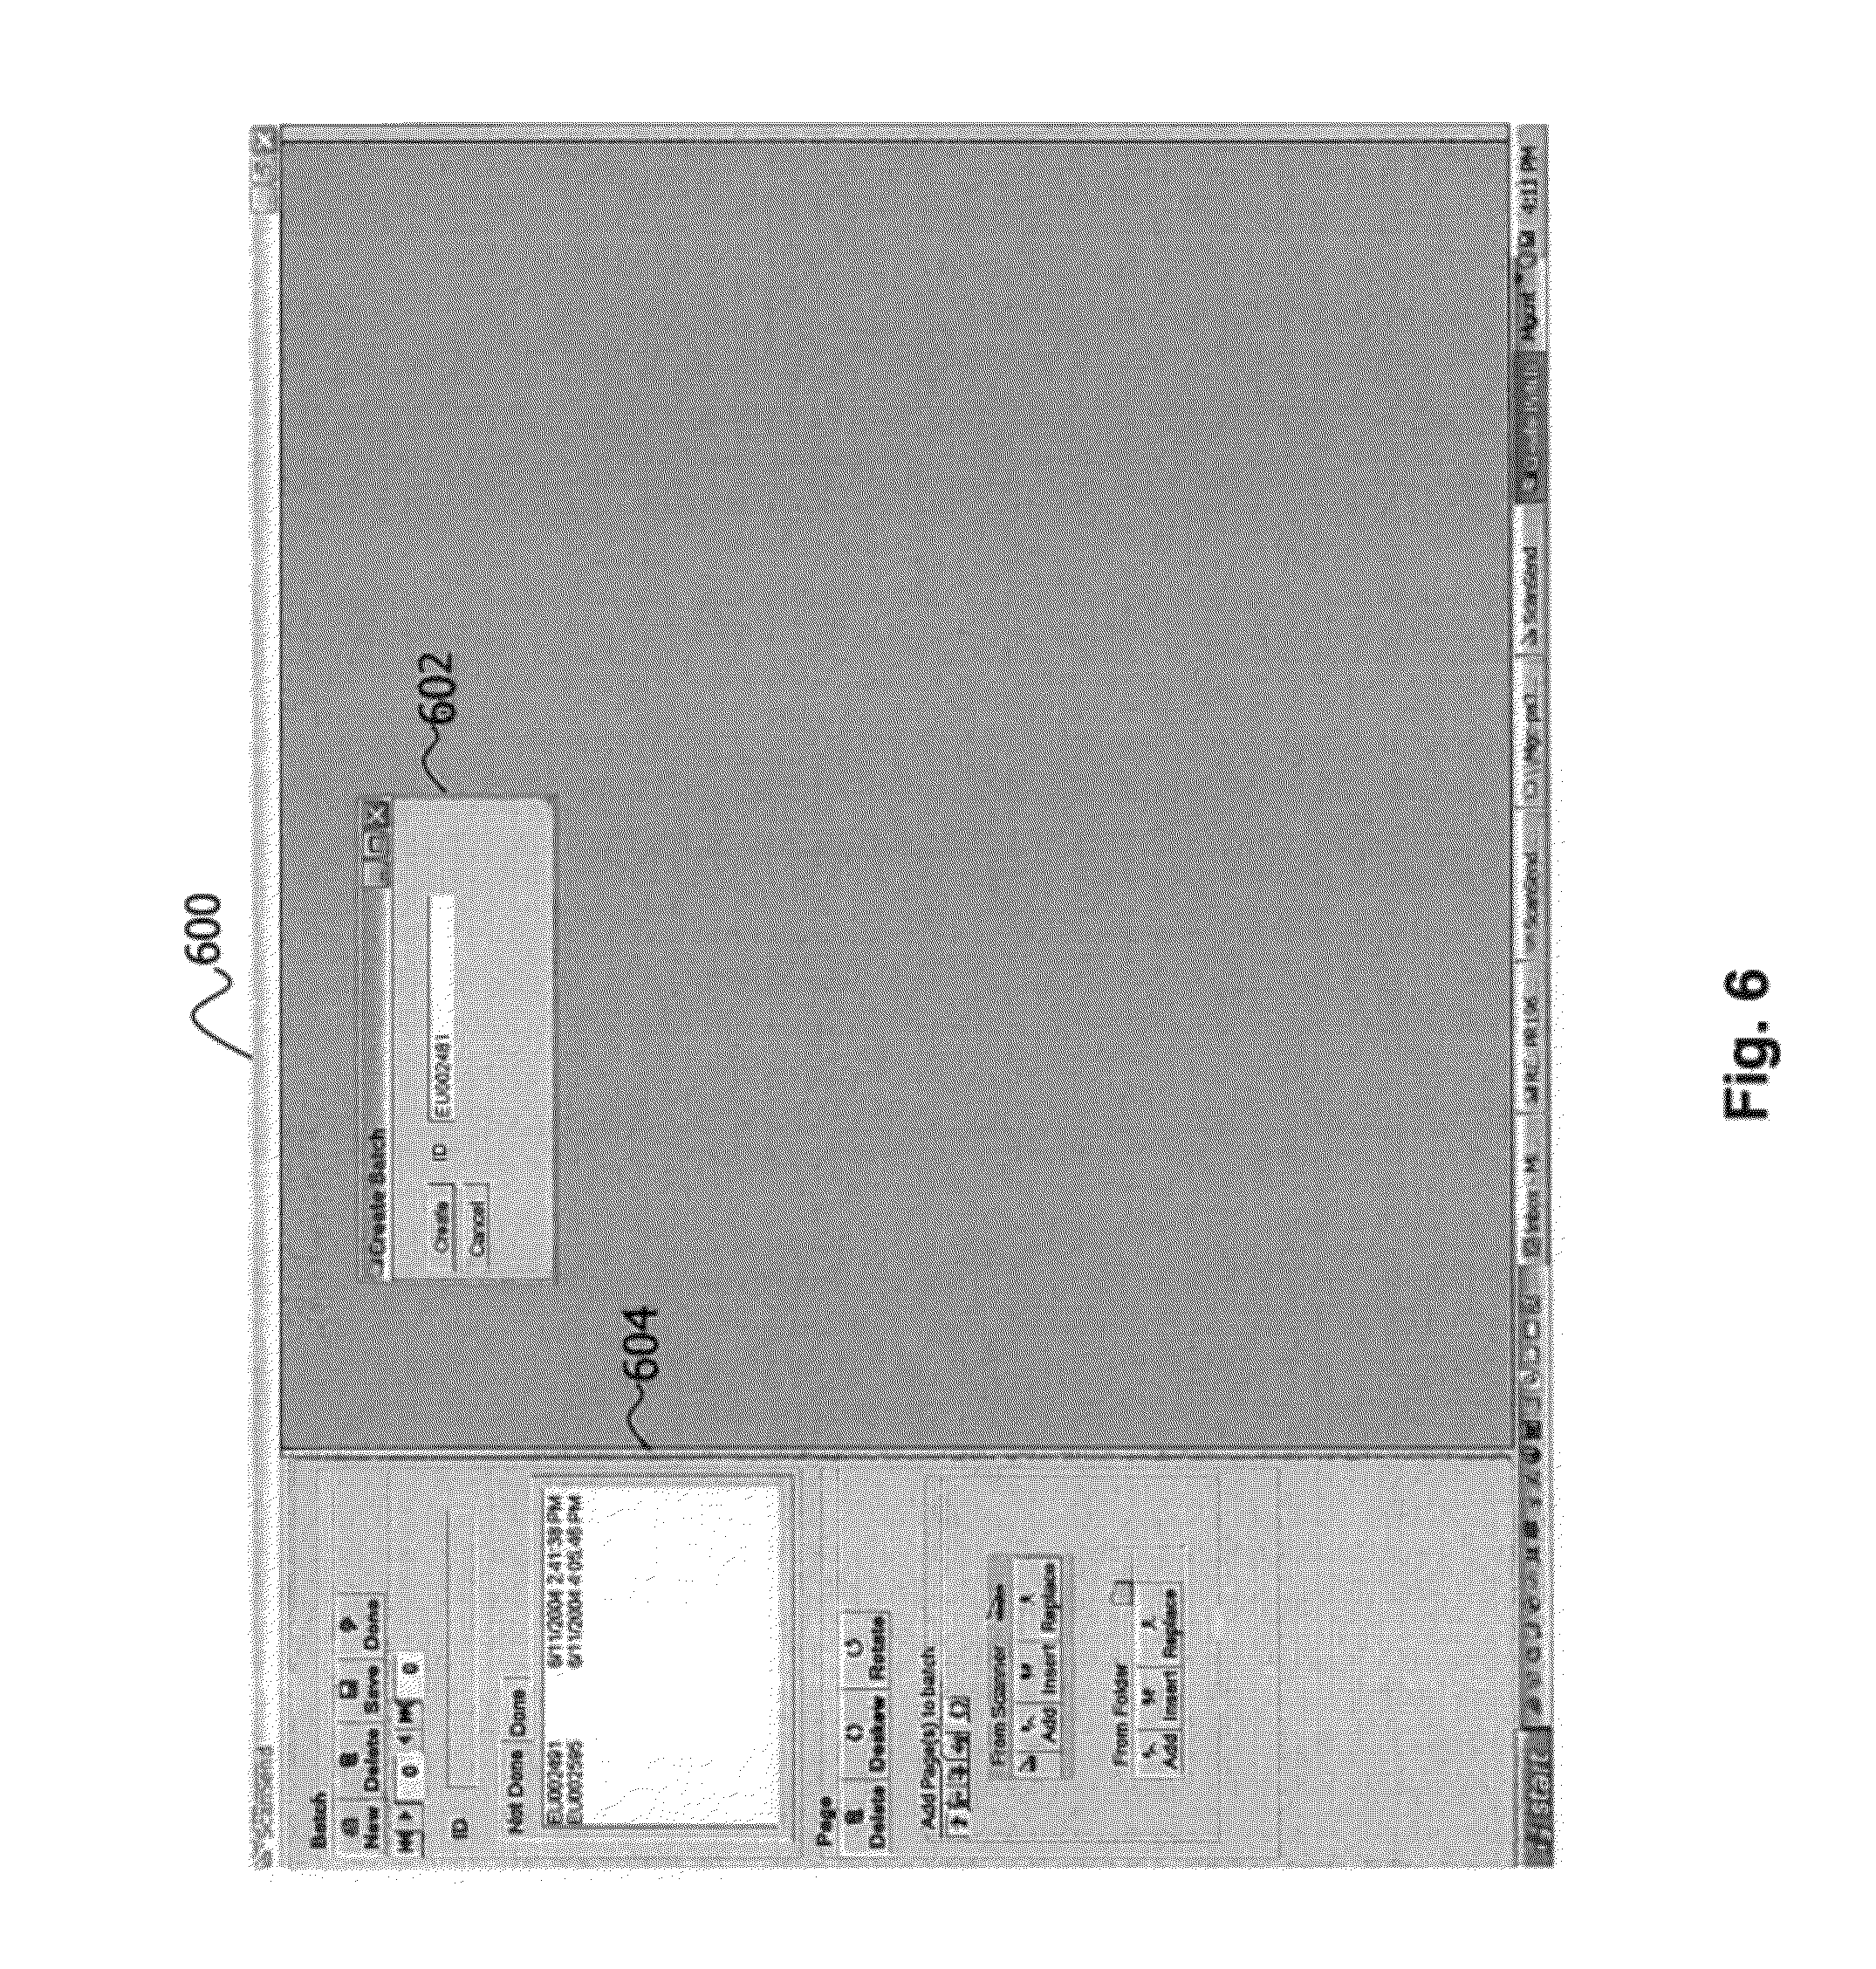 Personalized Receipts Patent Us  Automated Invoice Processing Software And  Car Purchase Receipt Word with Retail Invoice Software Excel Patent Drawing 1297 Hand Receipt